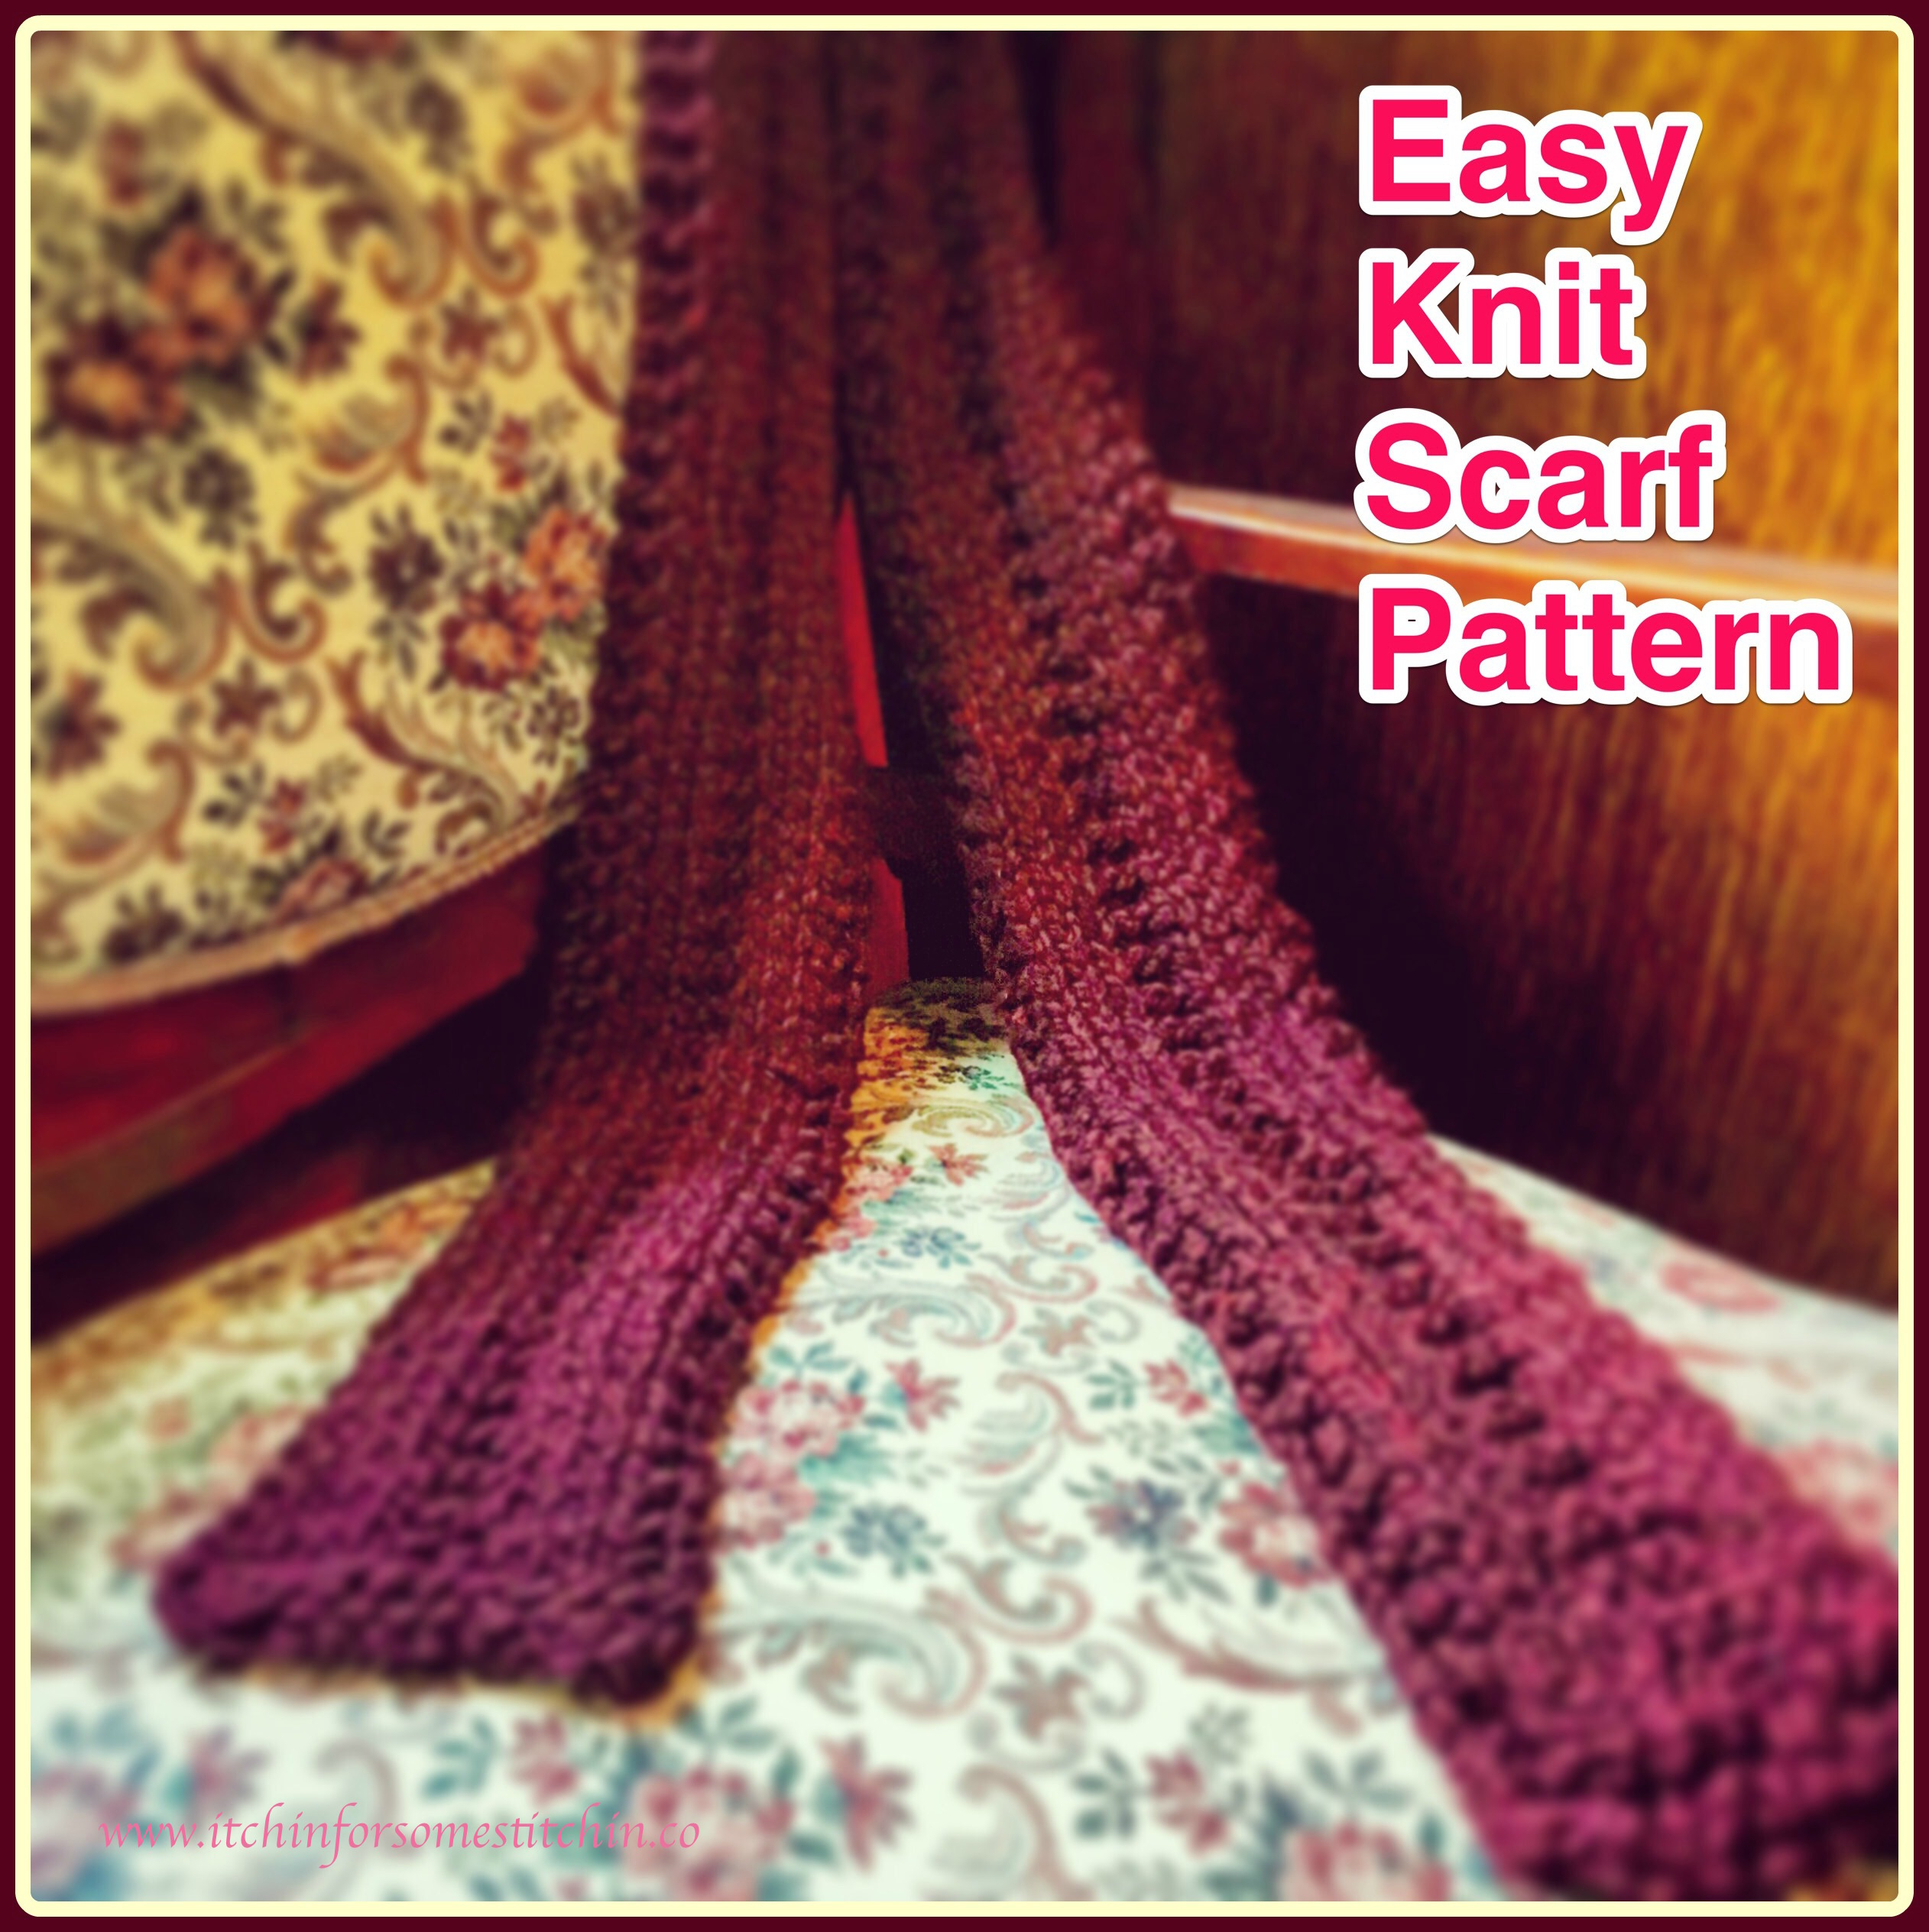 Free Easy Knitting Scarf Patterns For Beginners Free Easy Knit Scarf Pattern Itchin For Some Stitchin